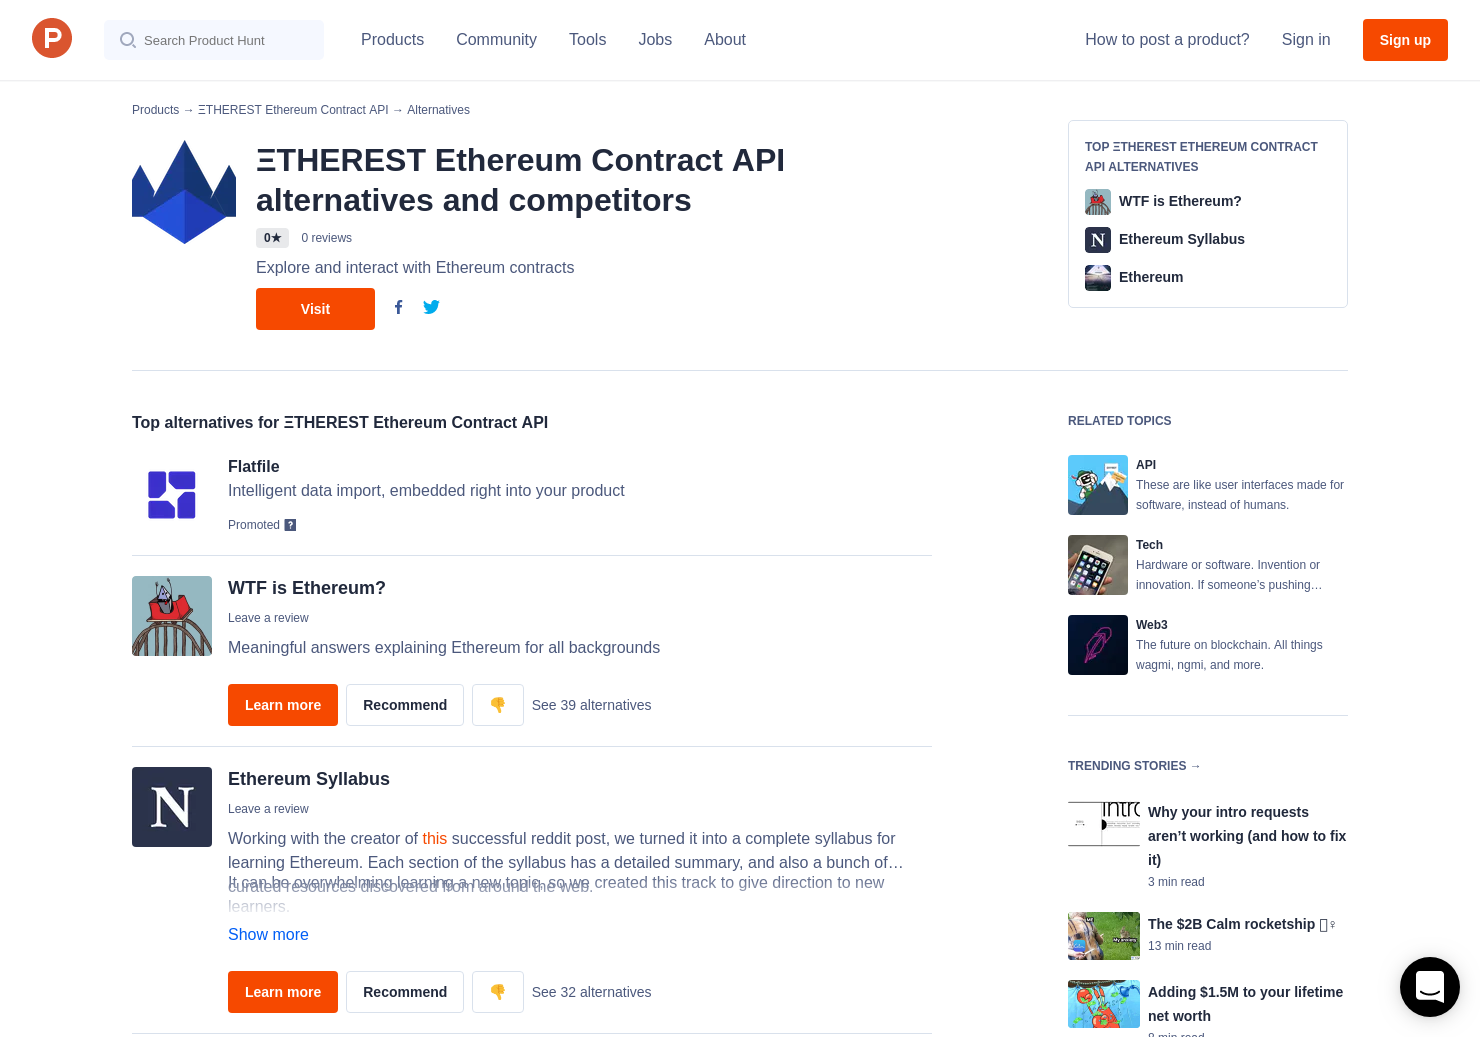 16 Alternatives to ΞTHEREST Ethereum Contract API | Product Hunt